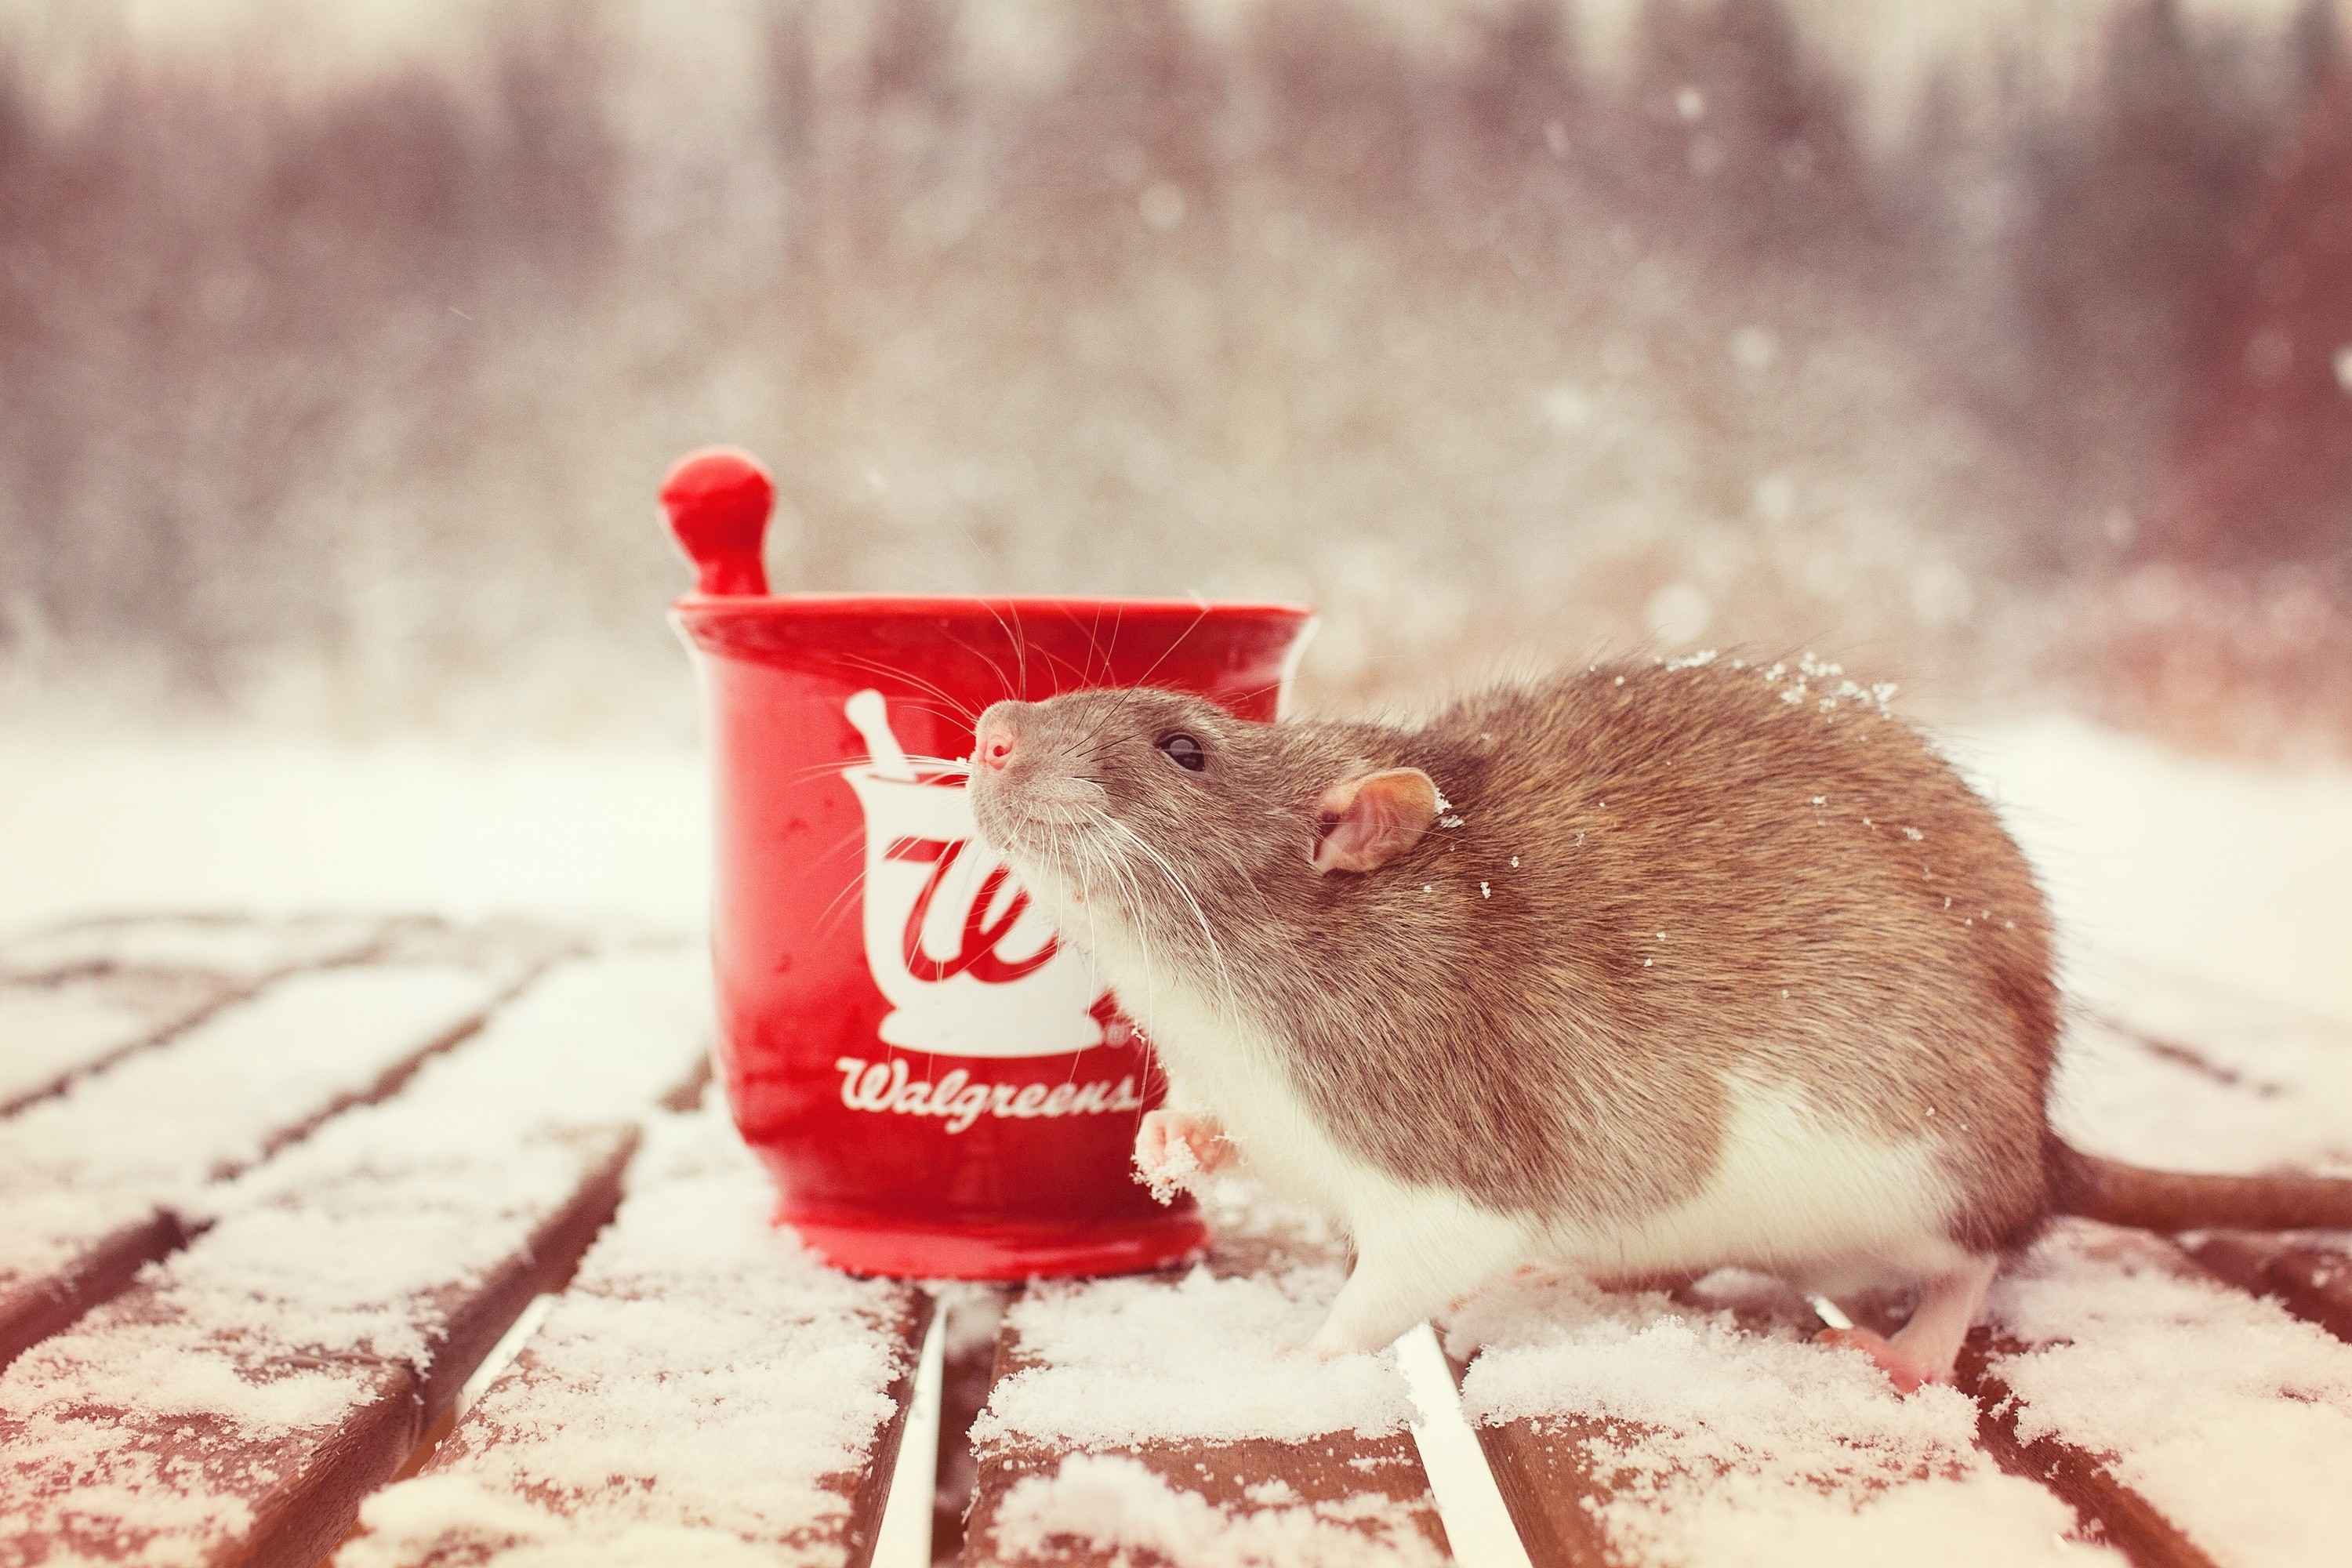 Res: 3000x2000, nature, snow,rat 4k, free animal pictures, rodent,hd, mortar, amazing,  winter, wallpaper hd mobile,_ Wallpaper HD